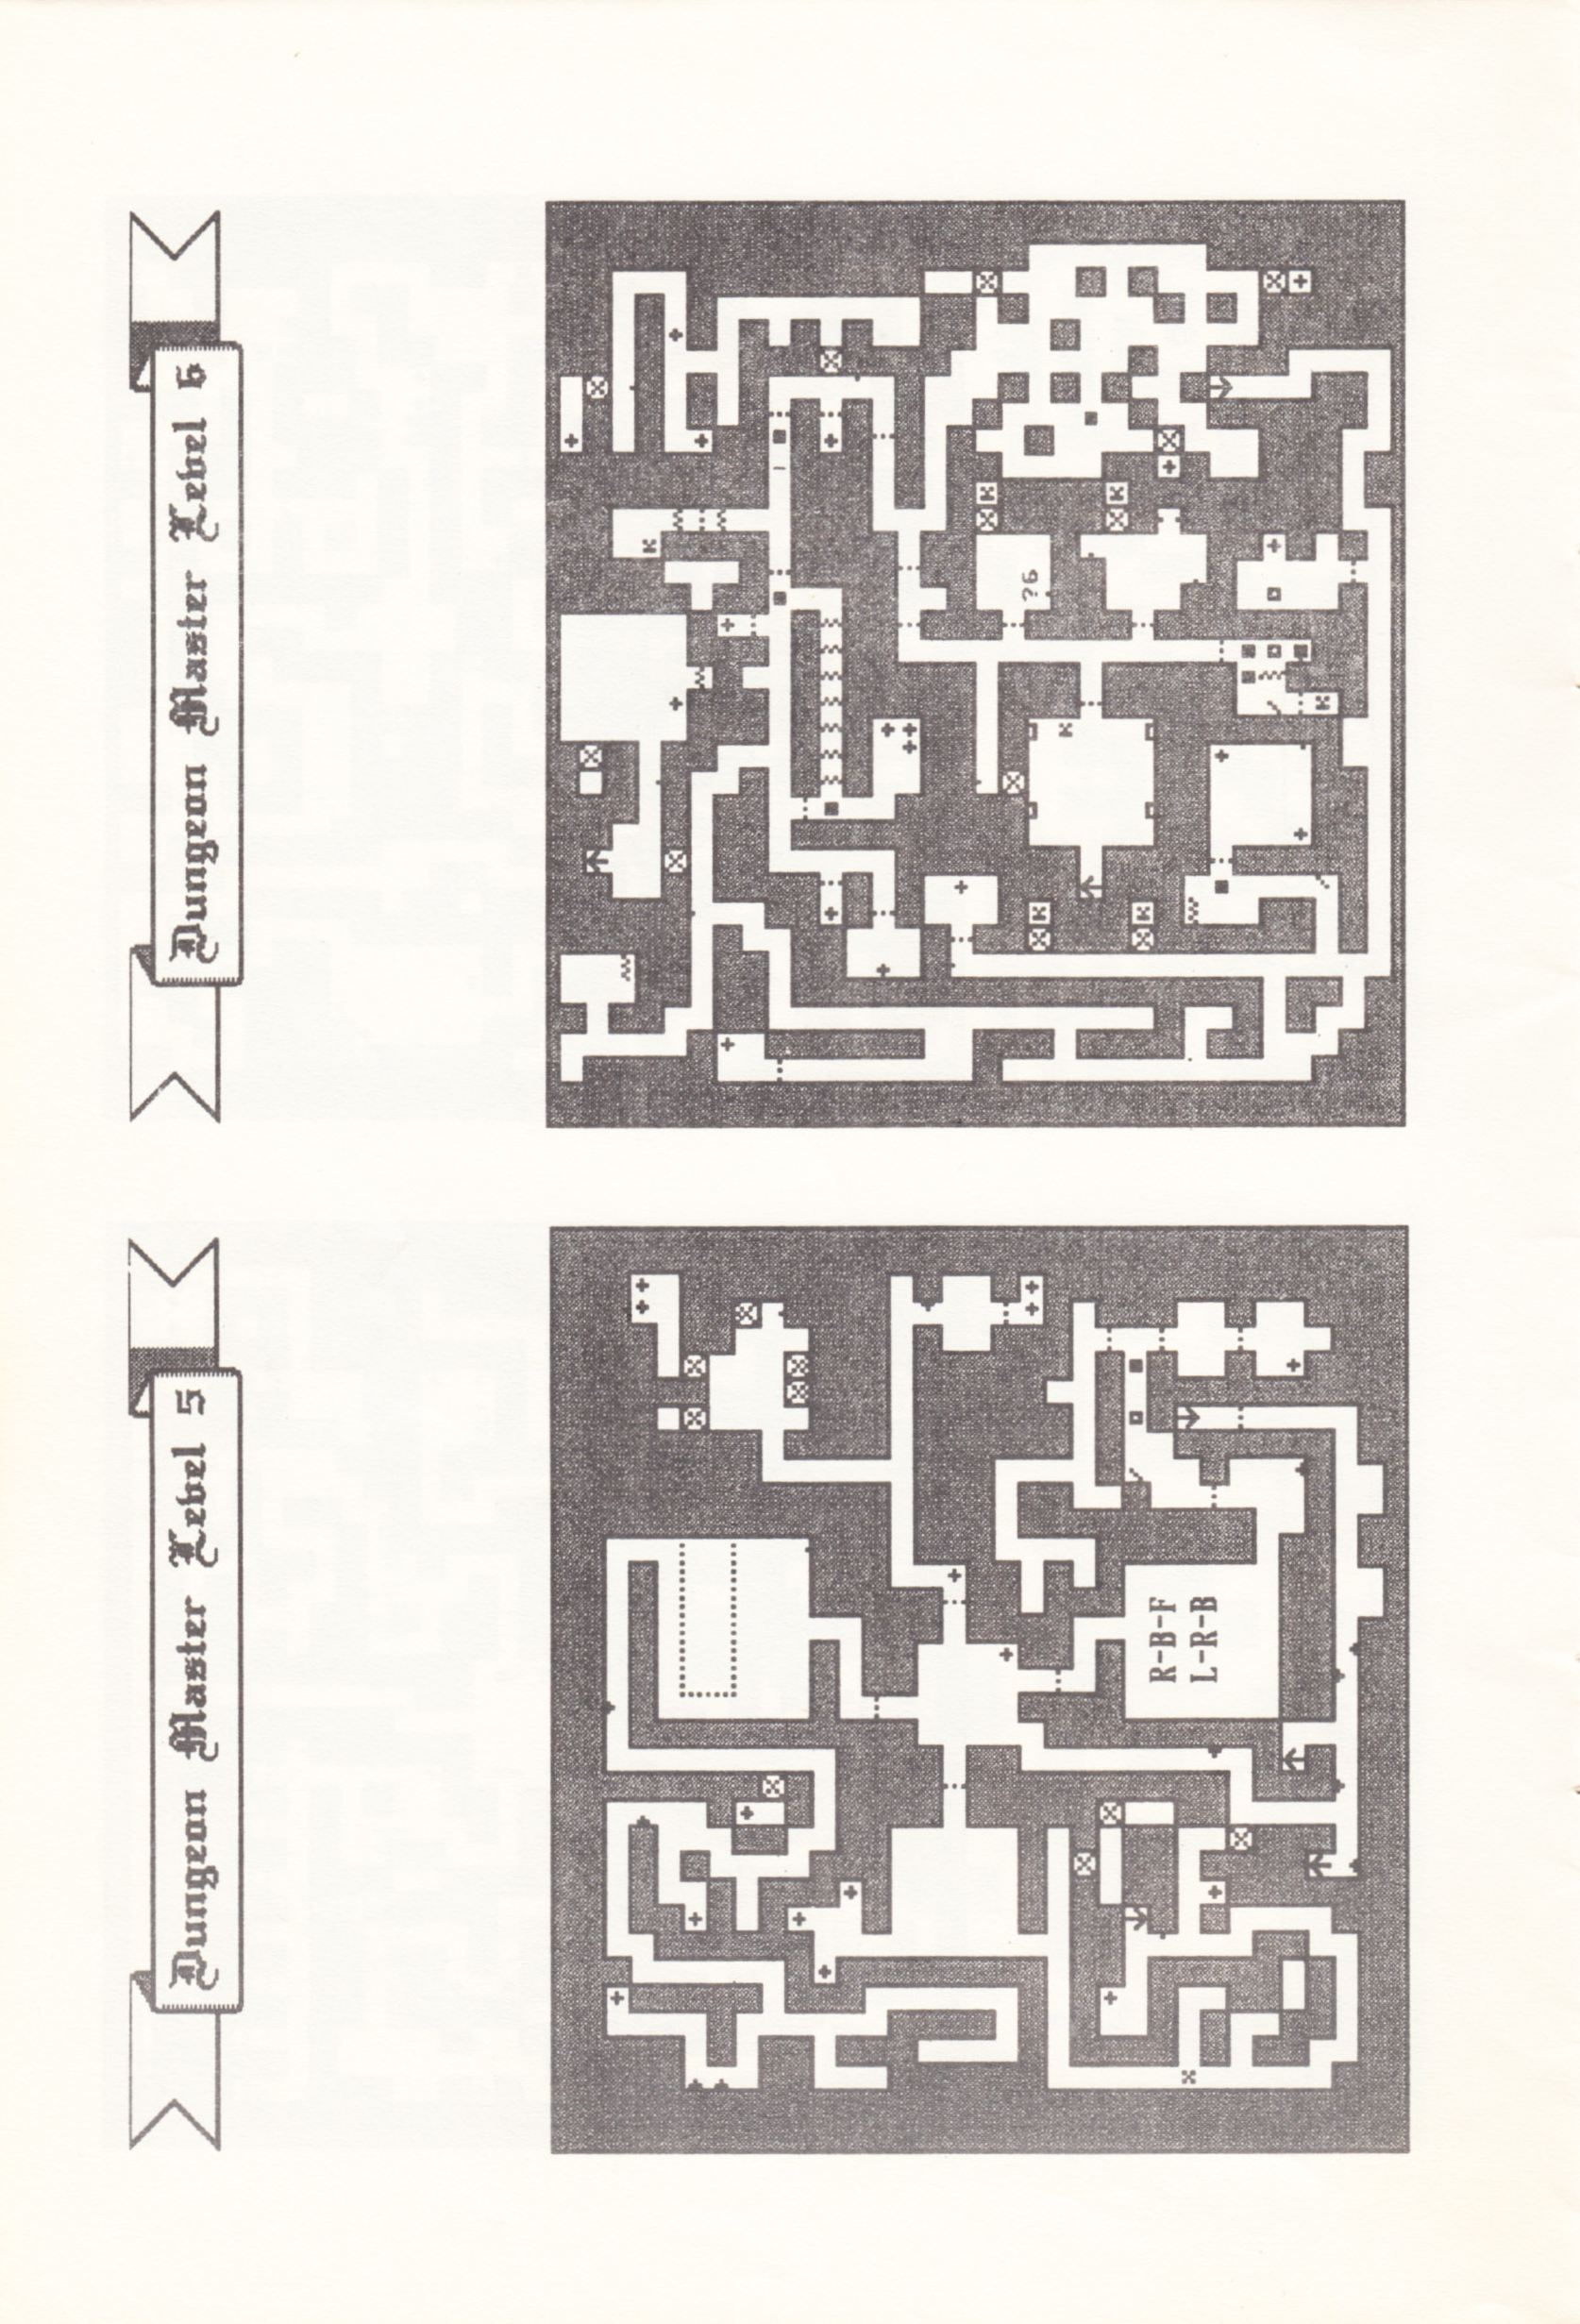 Tool - The Dungeon Master Editor - UK - Amiga - Atari ST Manual - Page 010 - Scan